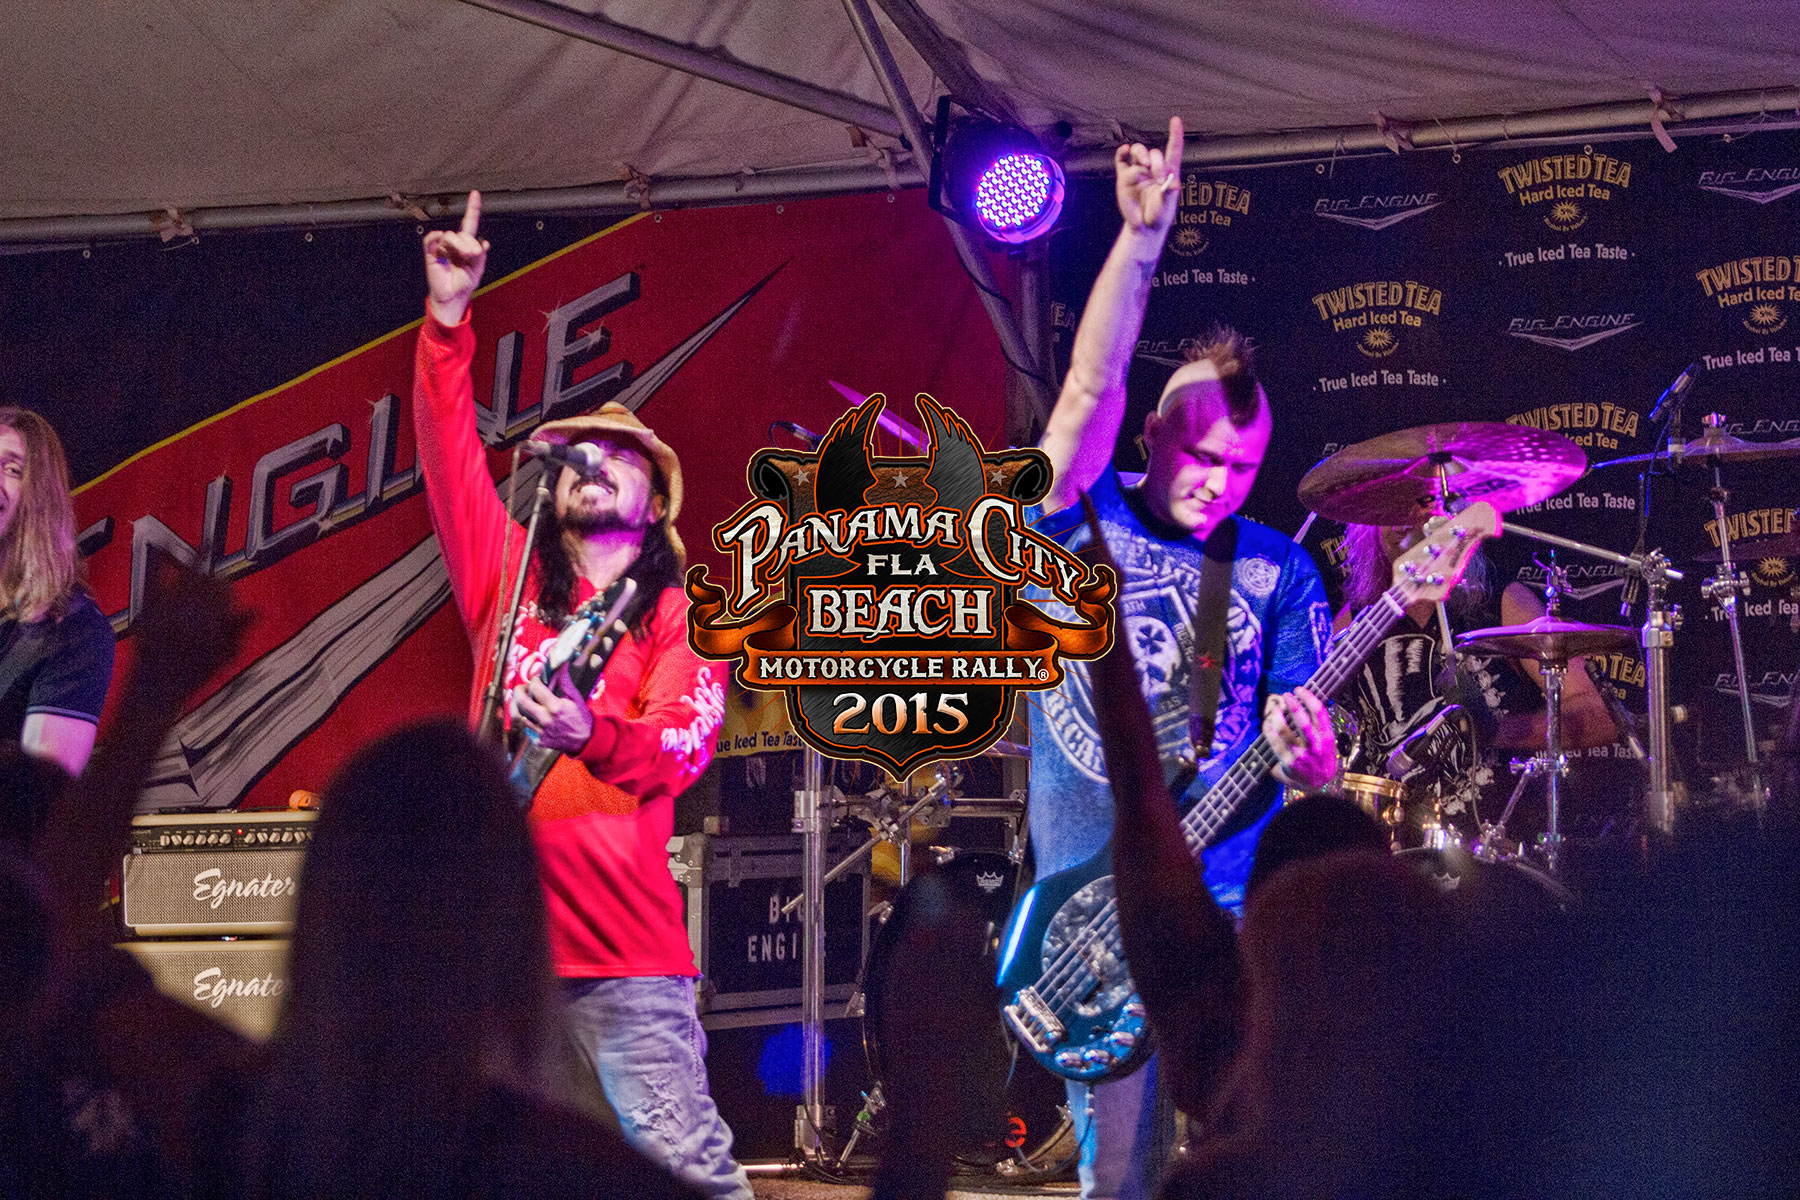 Motorcycle Rally Photos | Panama City Beach Motorcycle Rally® | 2015 Event Photos